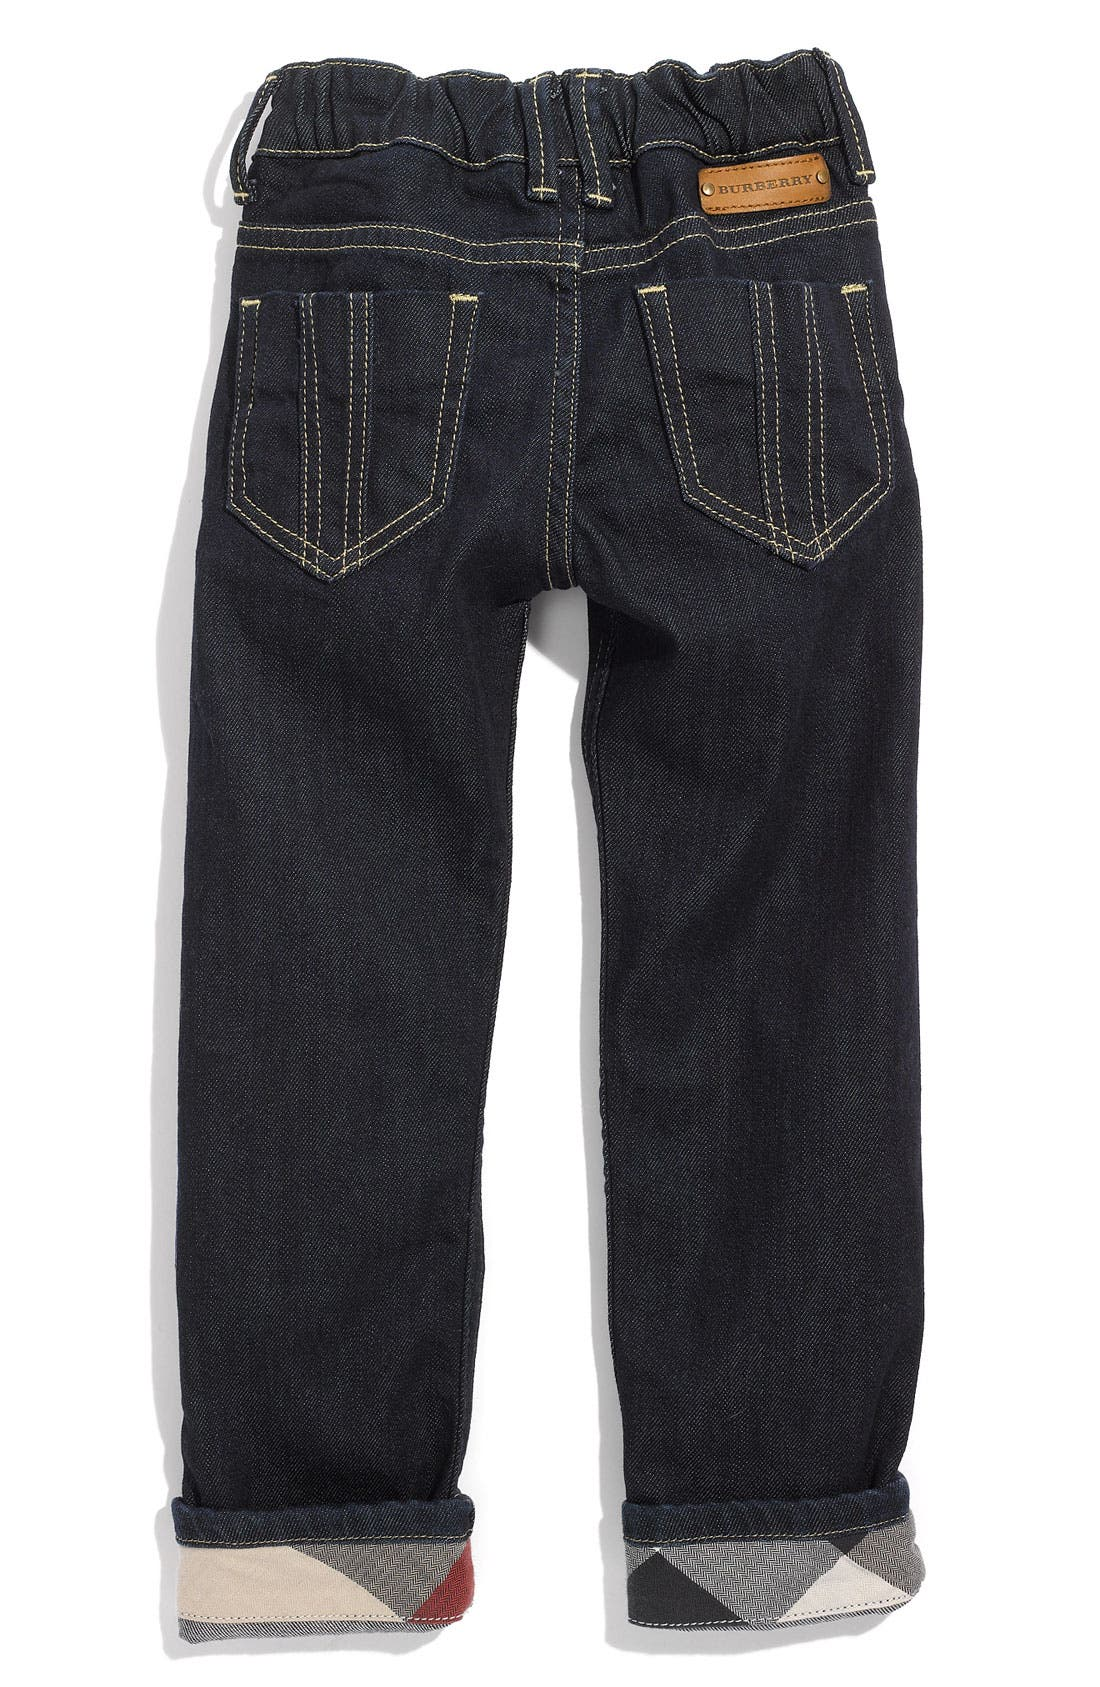 Alternate Image 1 Selected - Burberry Cuff Jeans (Toddler)